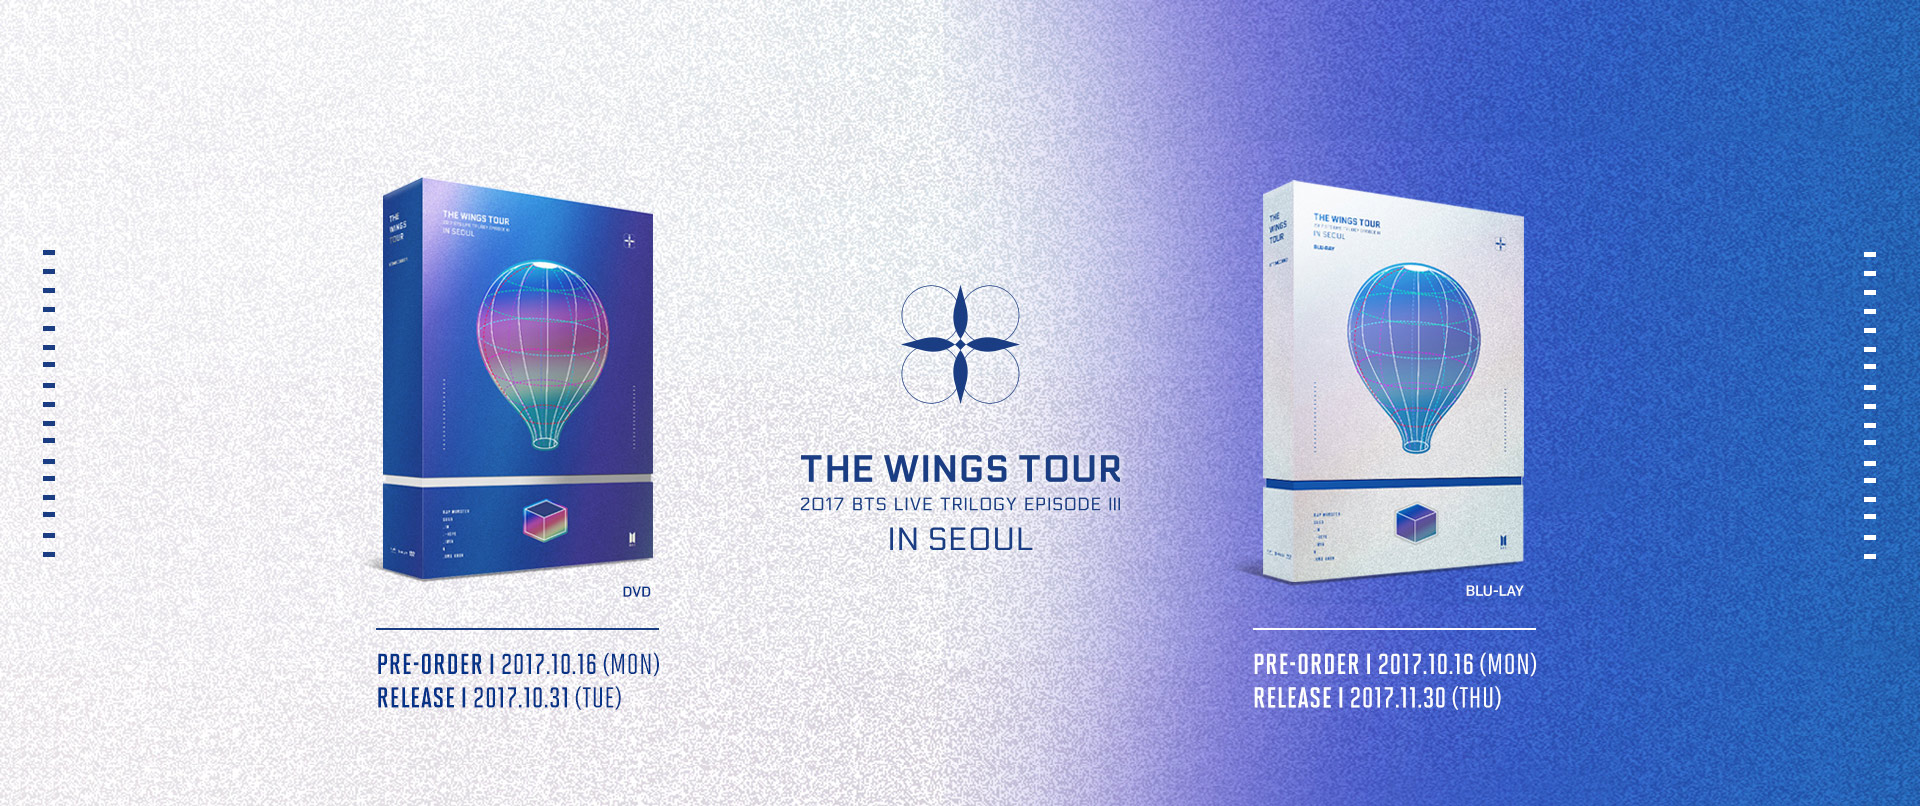 Cd Online Kaufen [info] 2017 Bts Live Trilogy Episode Iii The Wings Tour In